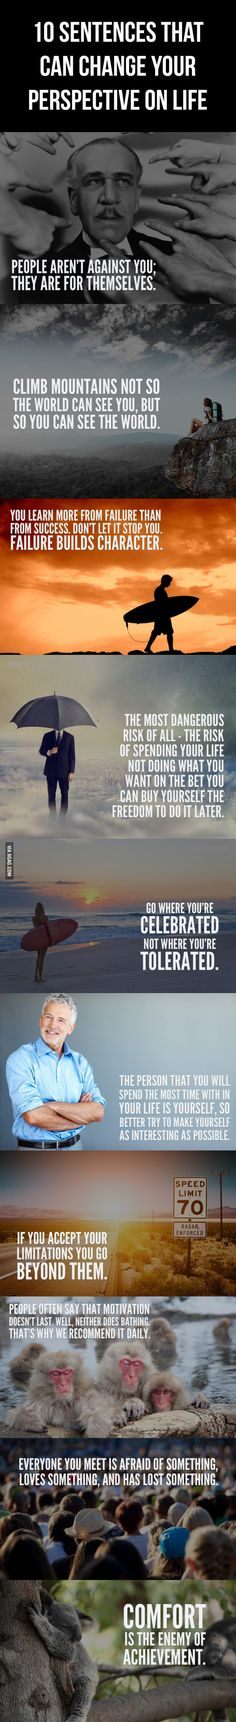 Some really good; others make no sense. Wish I could seperate them! 10 Sentences That Can Change Your Perspective On Life